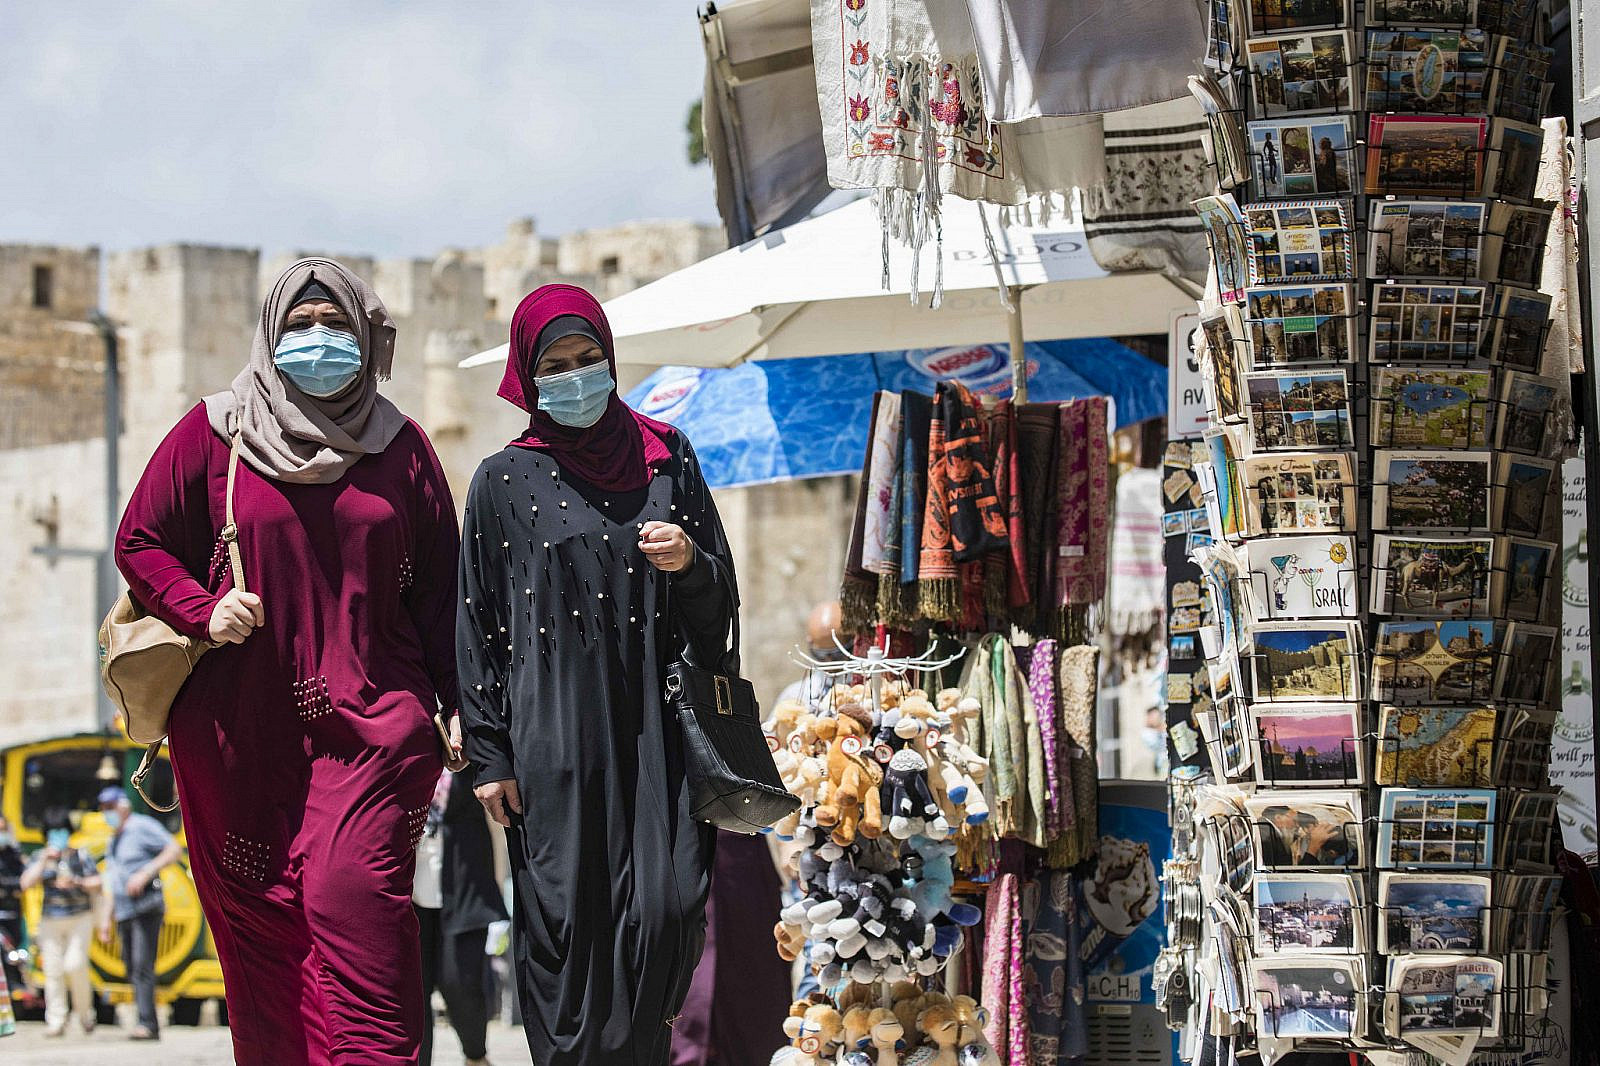 Palestinian women wearing face masks in Jerusalem's Old City, August 10, 2020. (Olivier Fitoussi/Flash90)